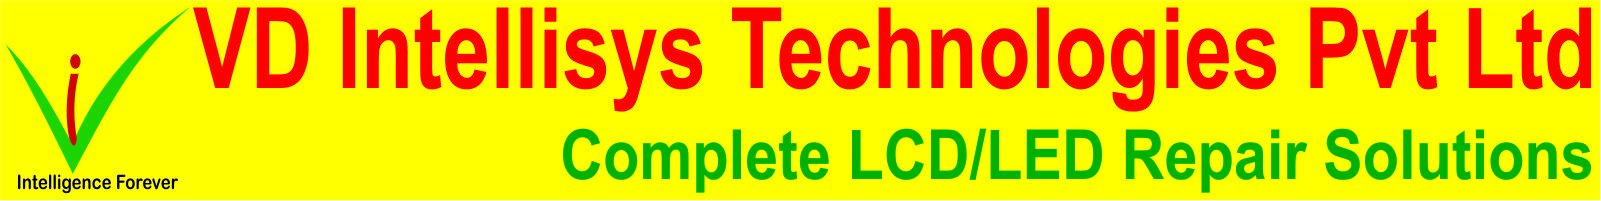 VD LCD : VD intellisys Technologies Pvt Ltd